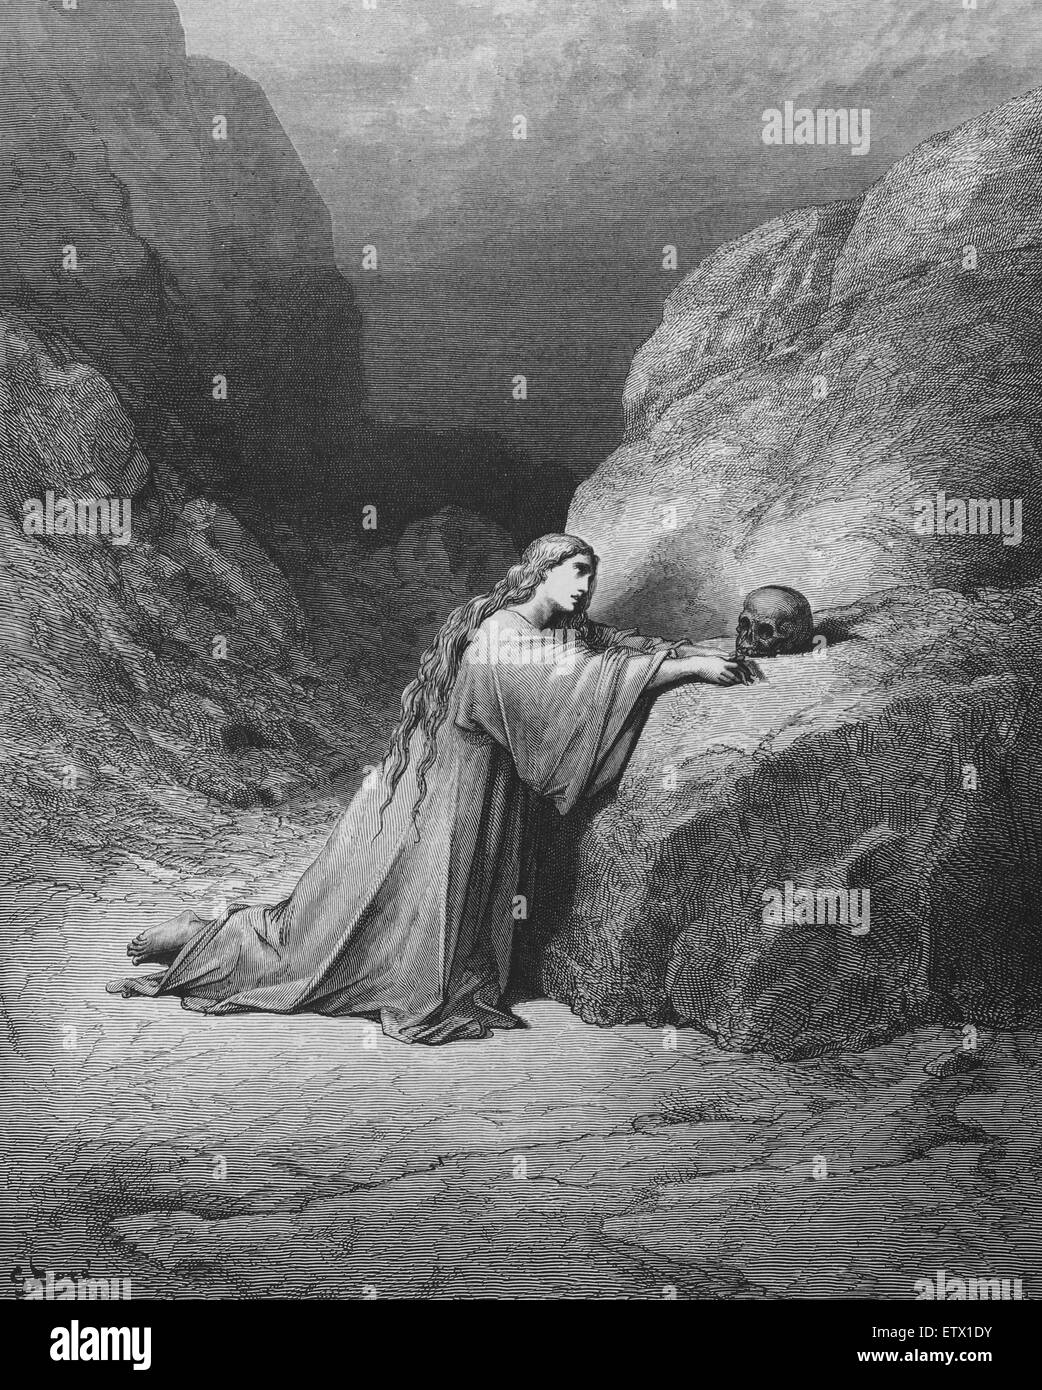 New Testament. Mary Magdalene repentant. Luke 7:47. Engraving by Gustave Dore. 19th c. - Stock Image